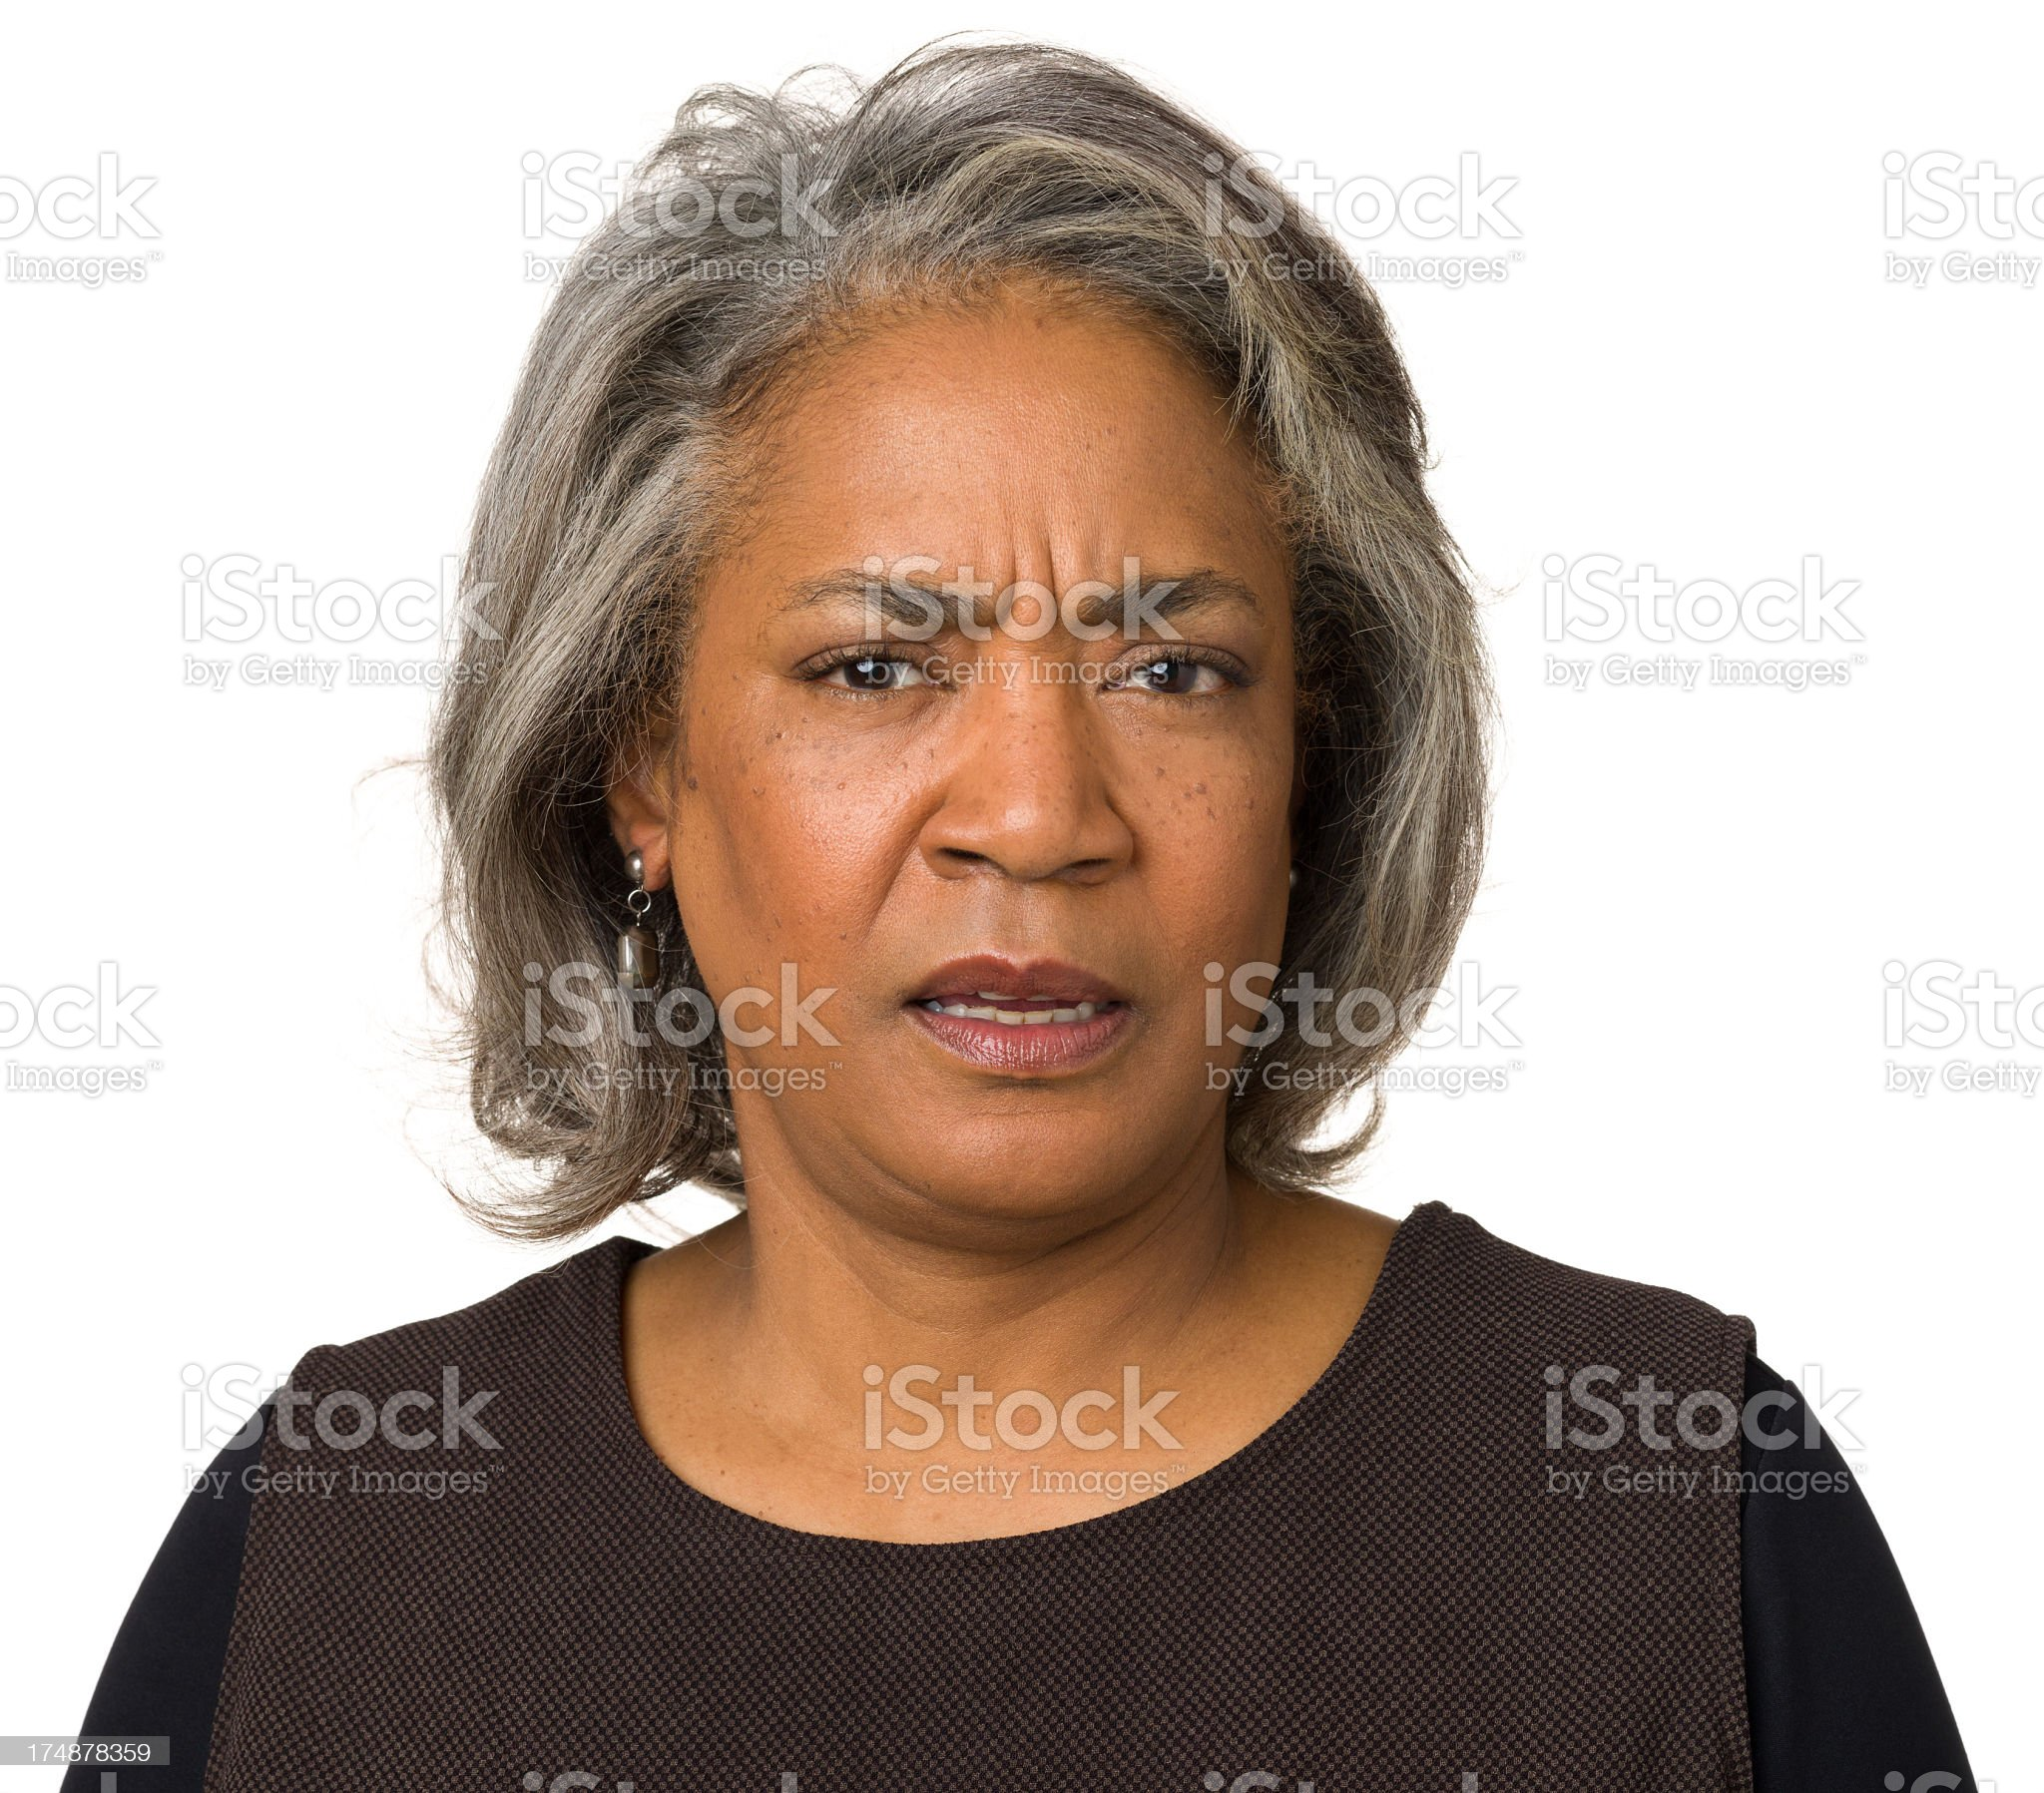 Frowning Nervous Mature Woman royalty-free stock photo